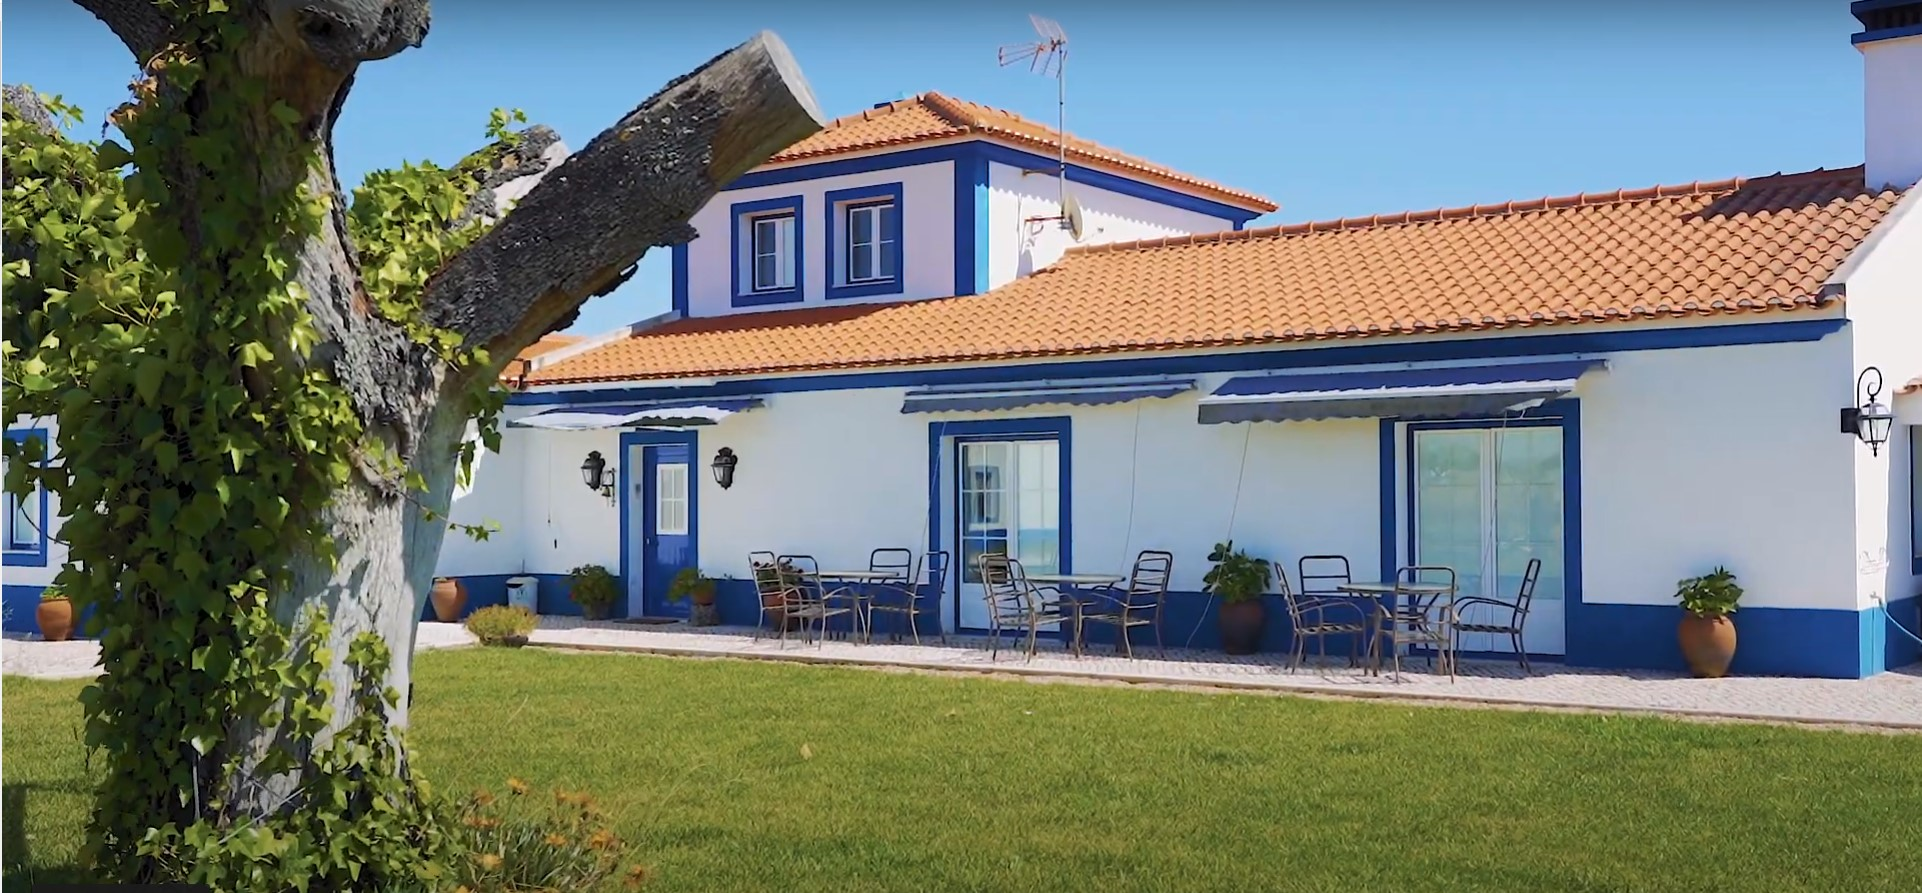 Excellent agritourism estate with an area of 33 hectares